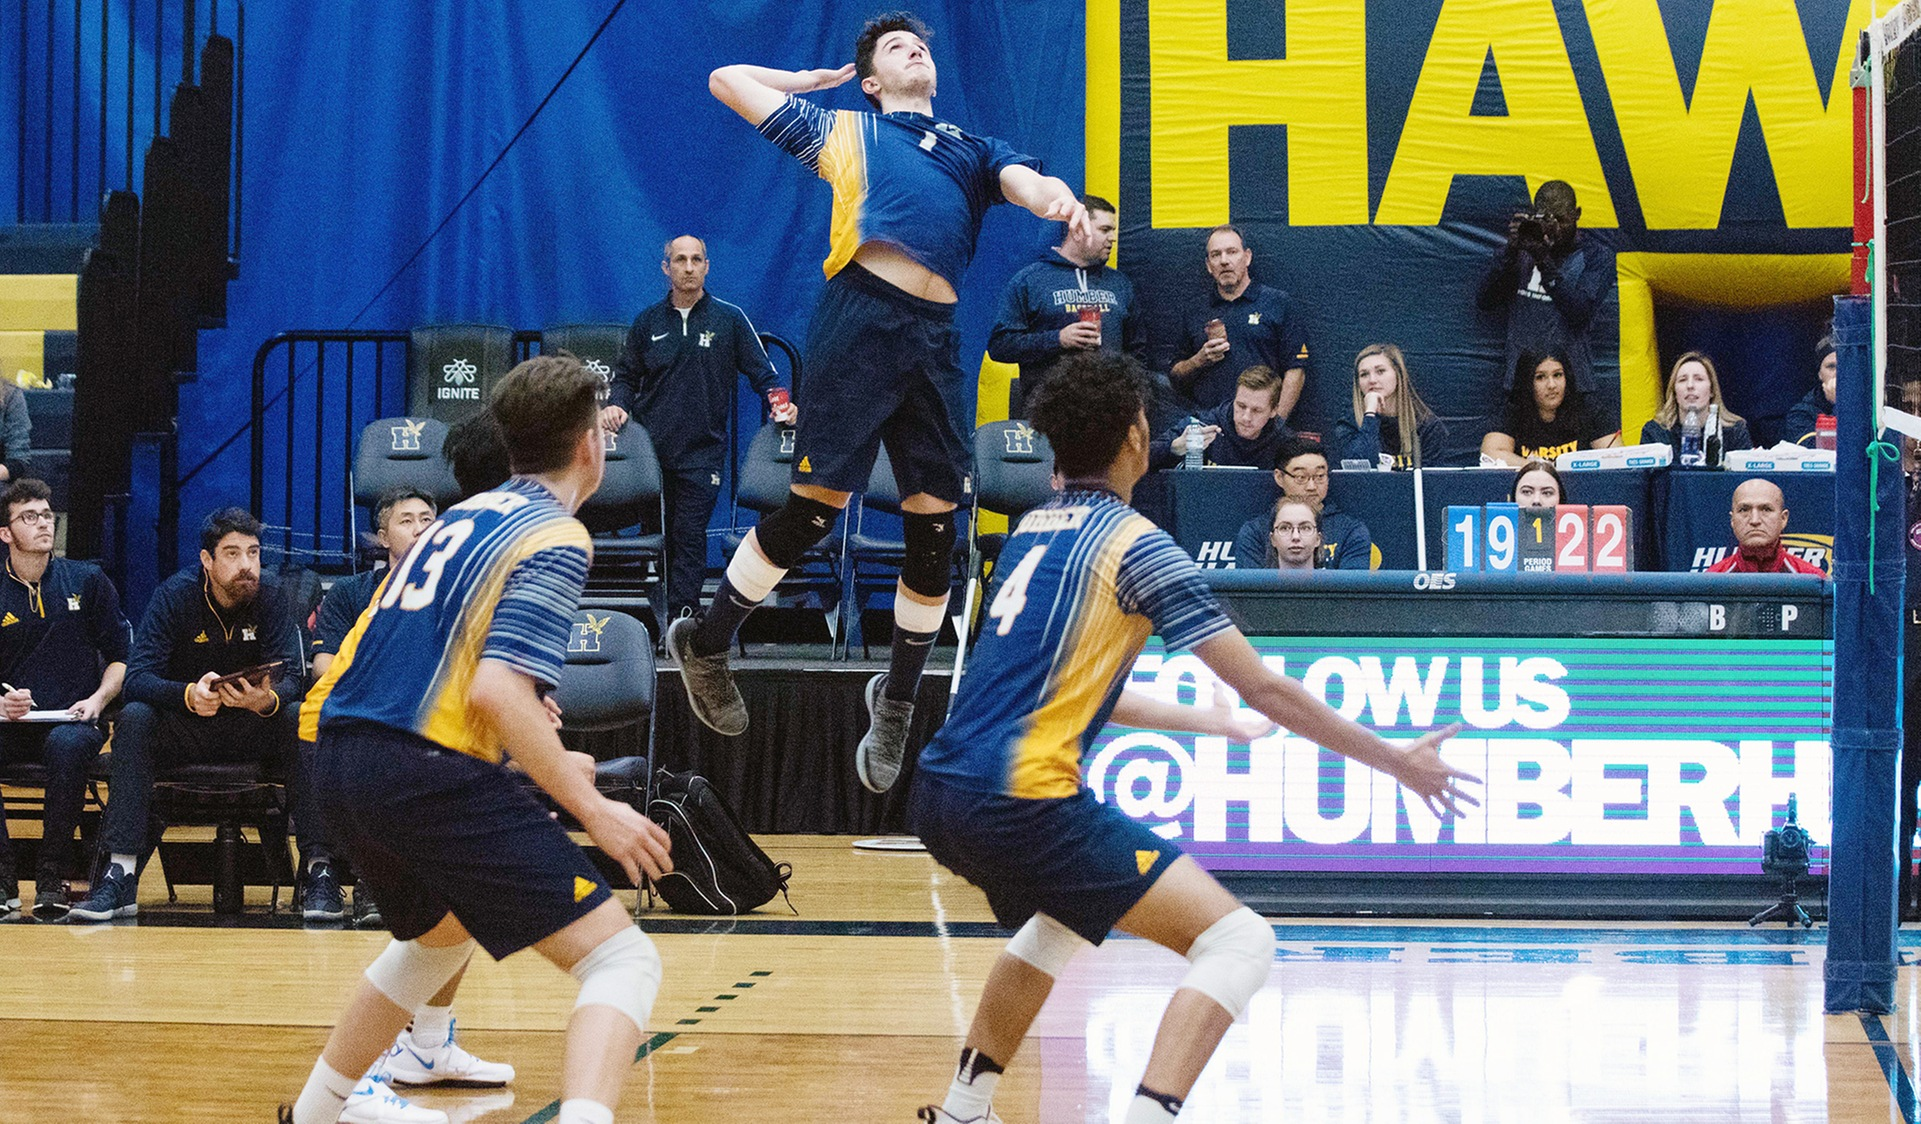 HAWKS LOOK TO REBOUND QUICKLY AFTER DROPPING FIRST MATCH OF THE YEAR